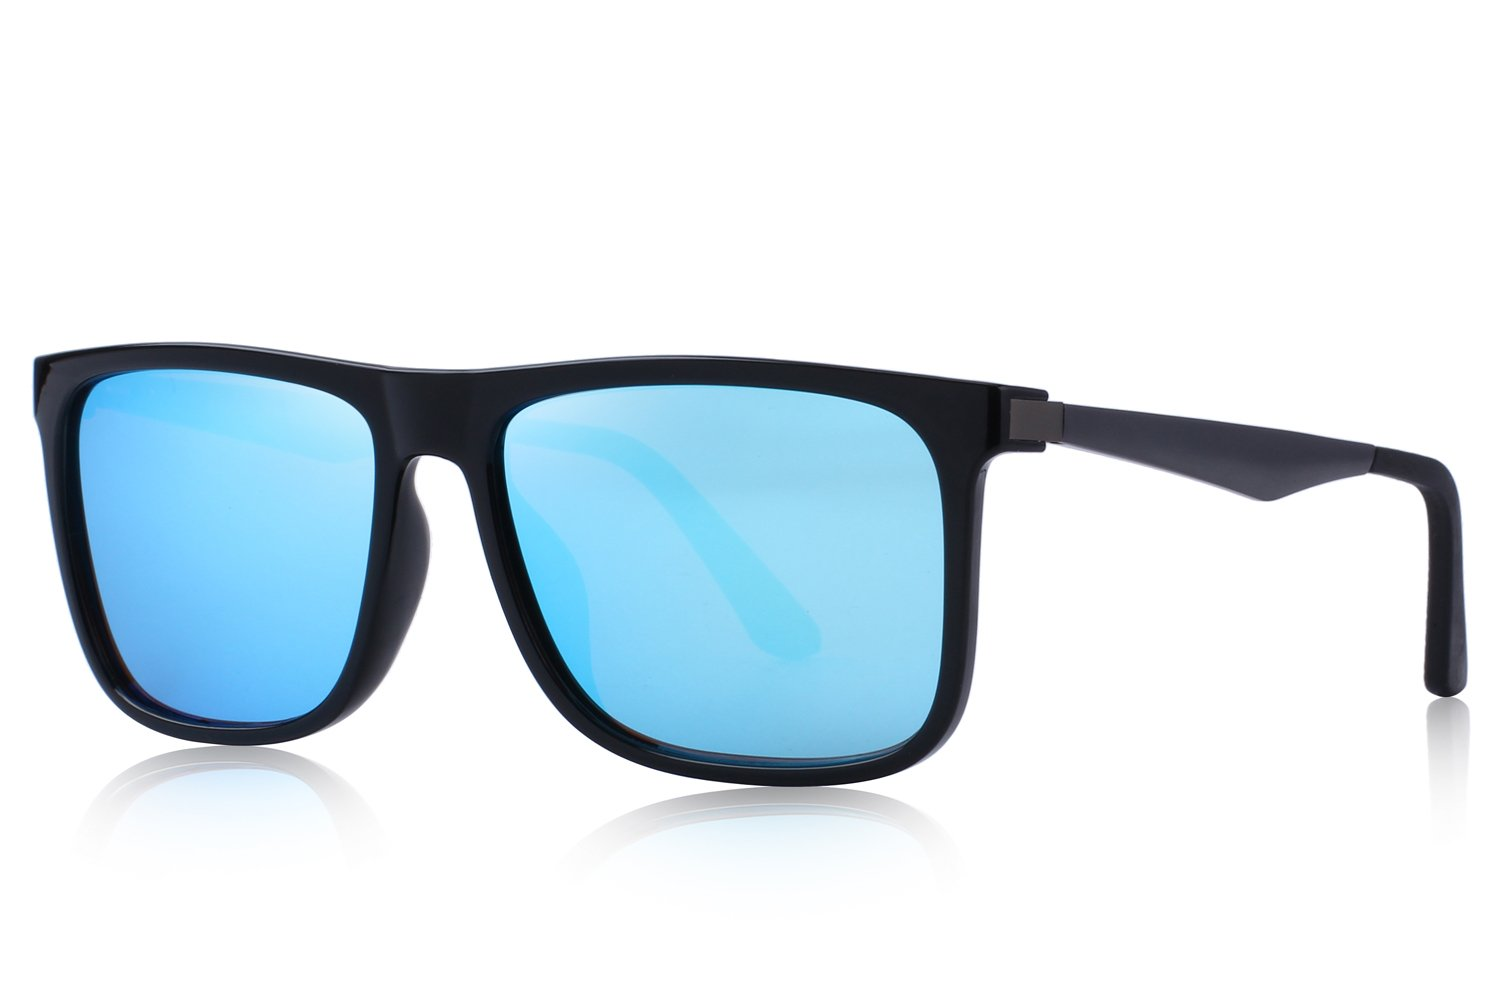 MERRY'S Polarized Square Sunglasses for men Aluminum Legs 100% UV Protection S8250 (Blue, 56) by MERRY'S